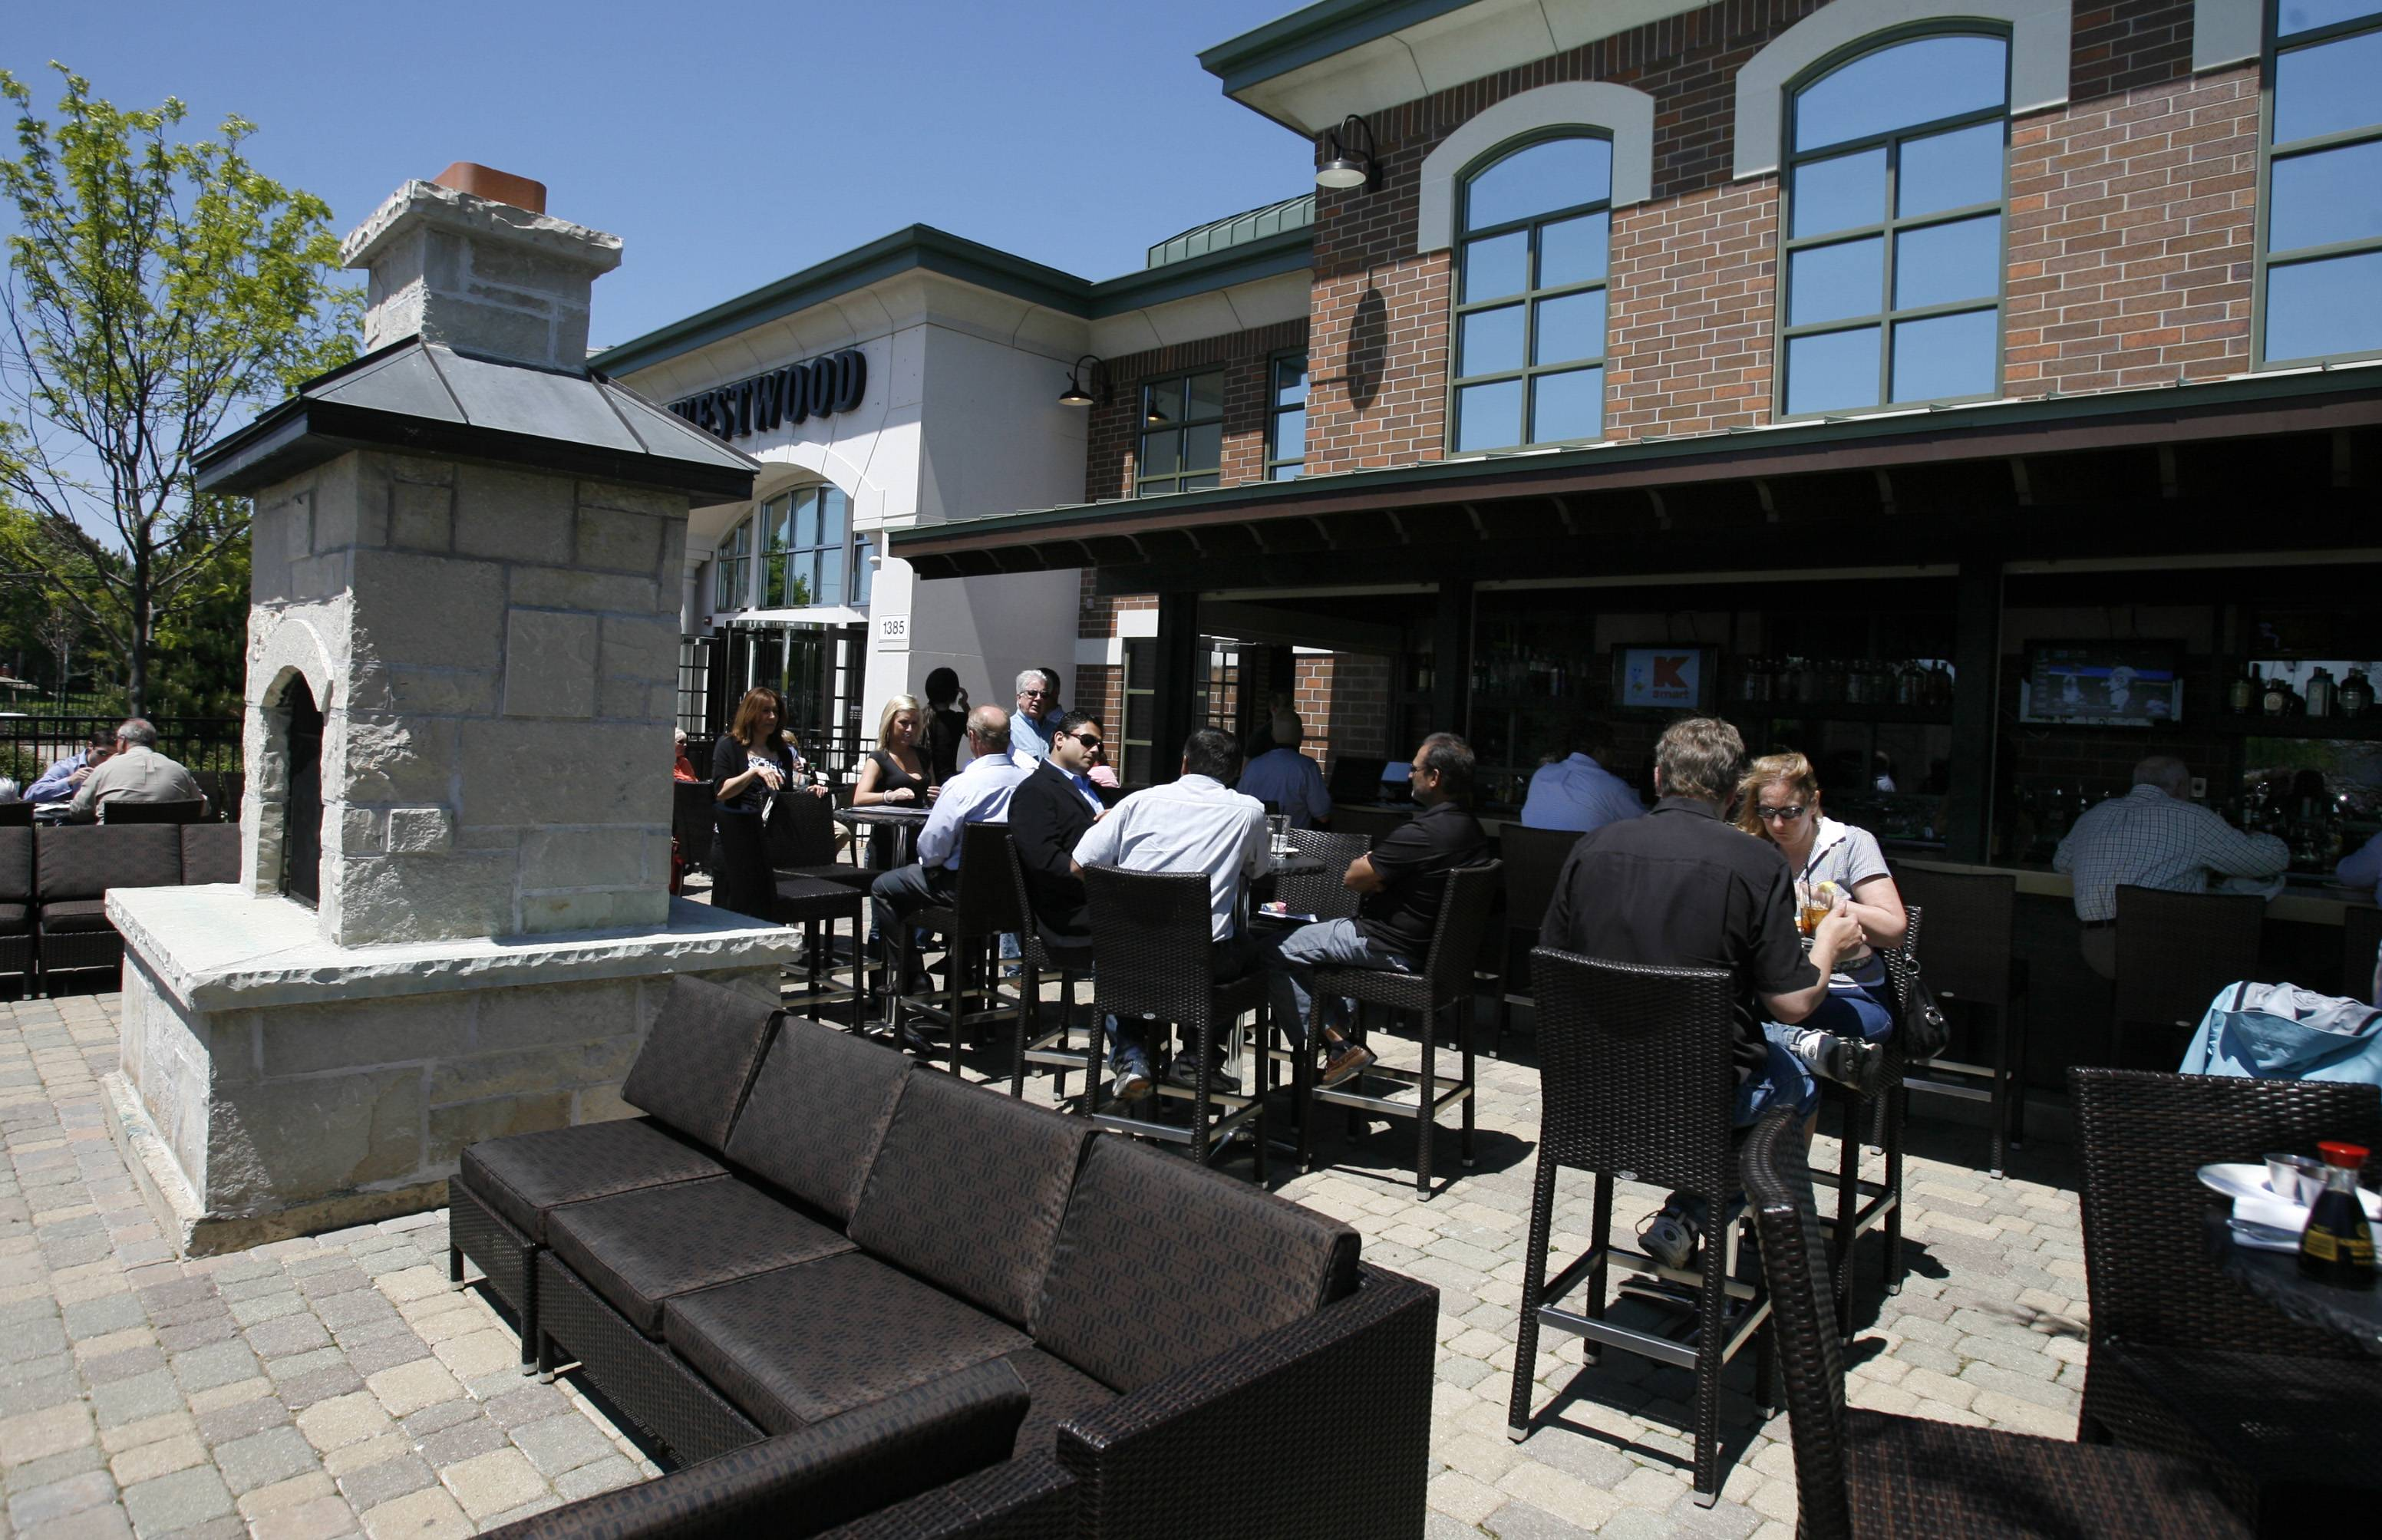 Fireplaces and lounge seating are included in the outdoor dining area of Westwood Tavern in Schaumburg.